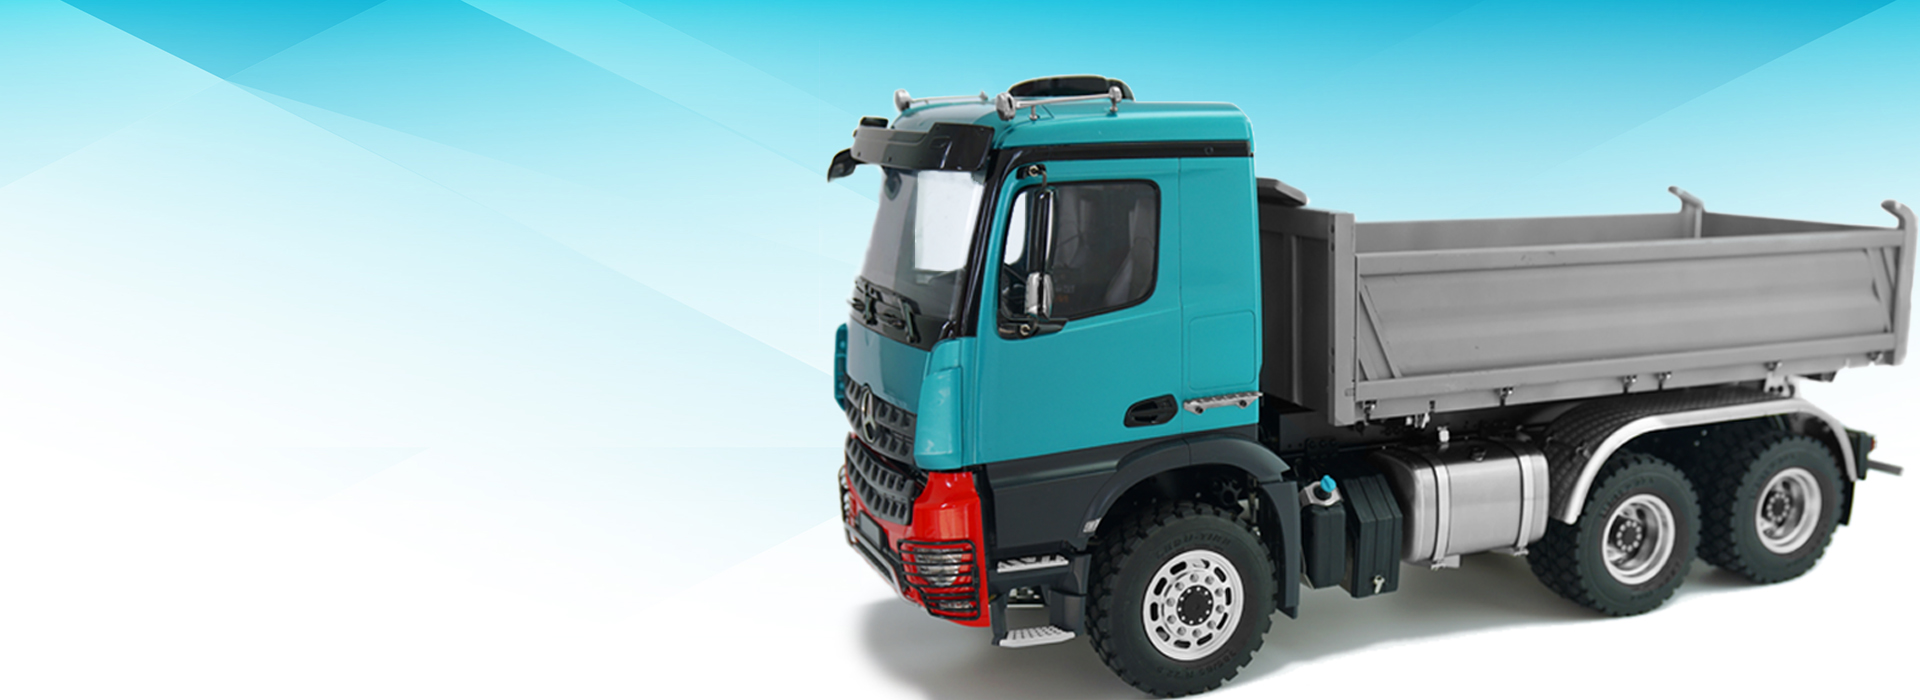 1/14 Benz three-way dump truck